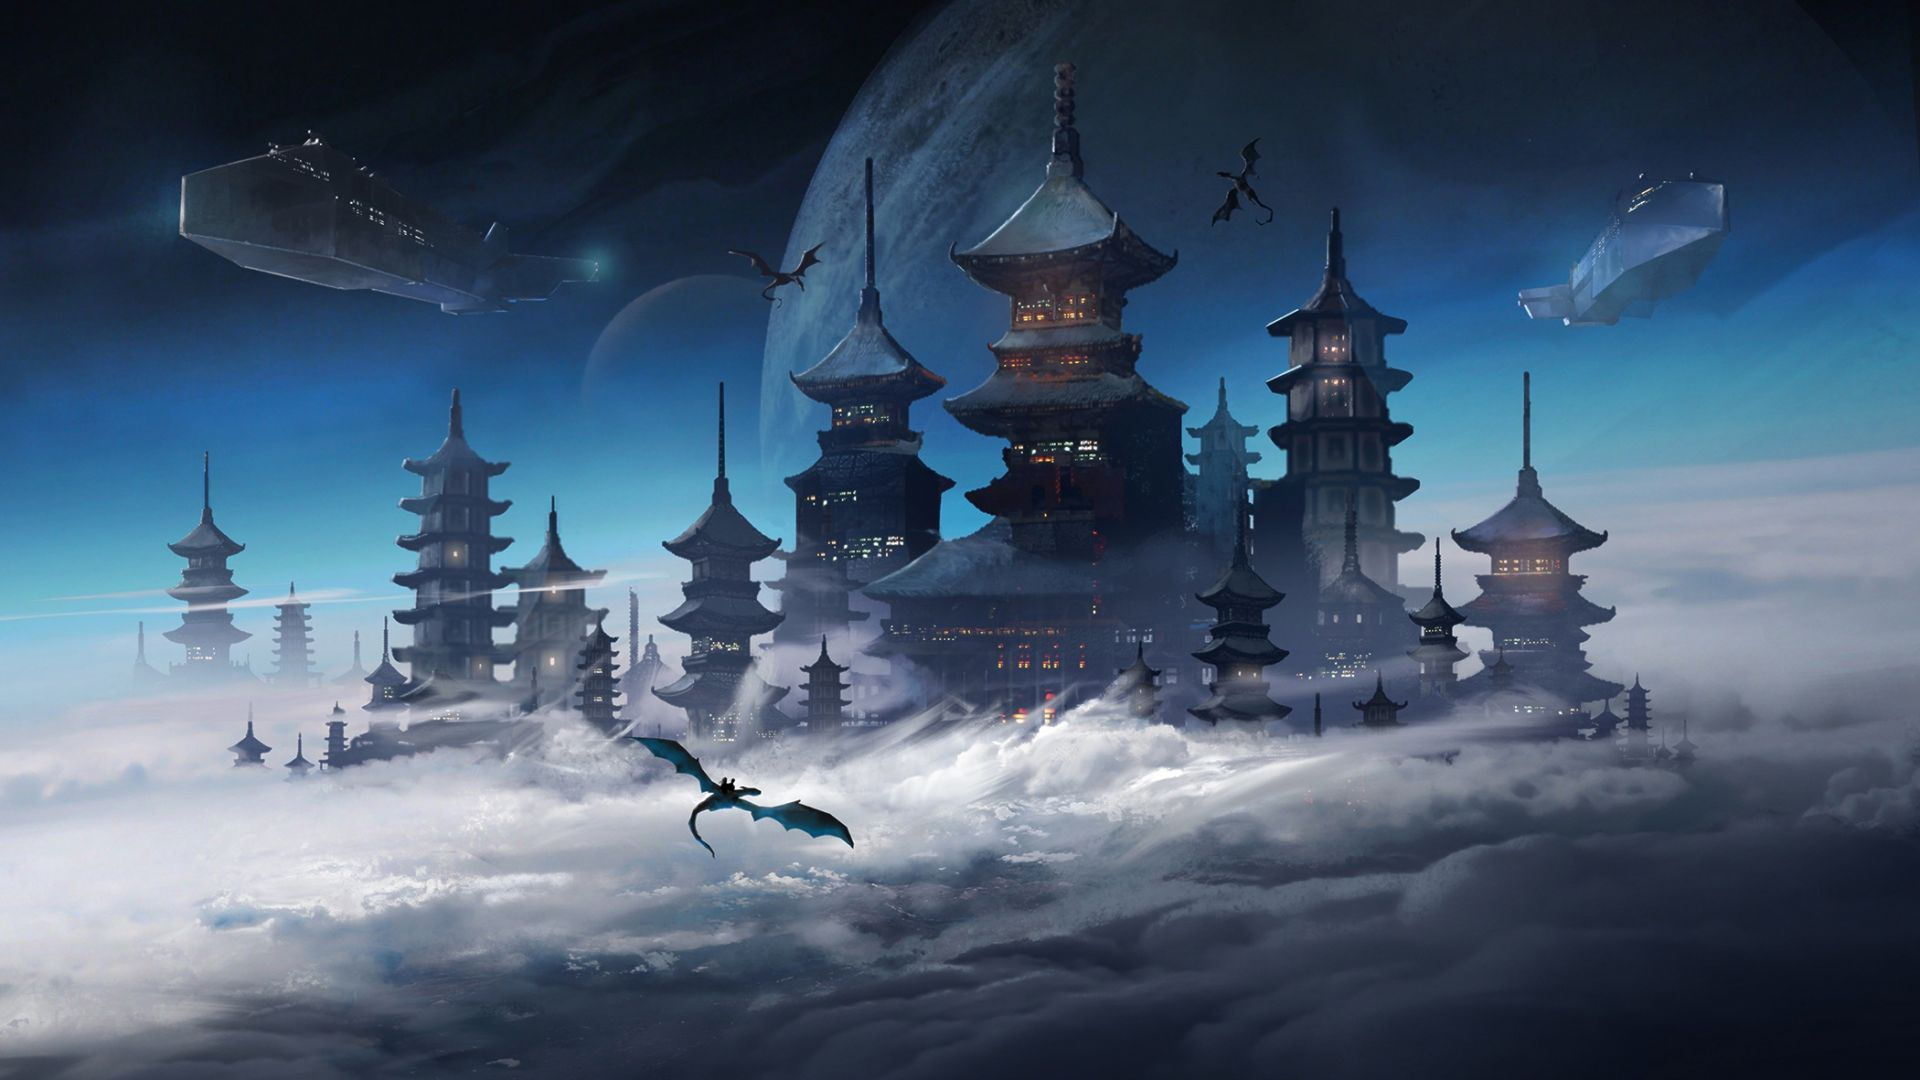 Any One 1 6 Jaeger Birds Hd Wallpapers: Desktop Wallpaper Fantasy, Modern China City, Clouds